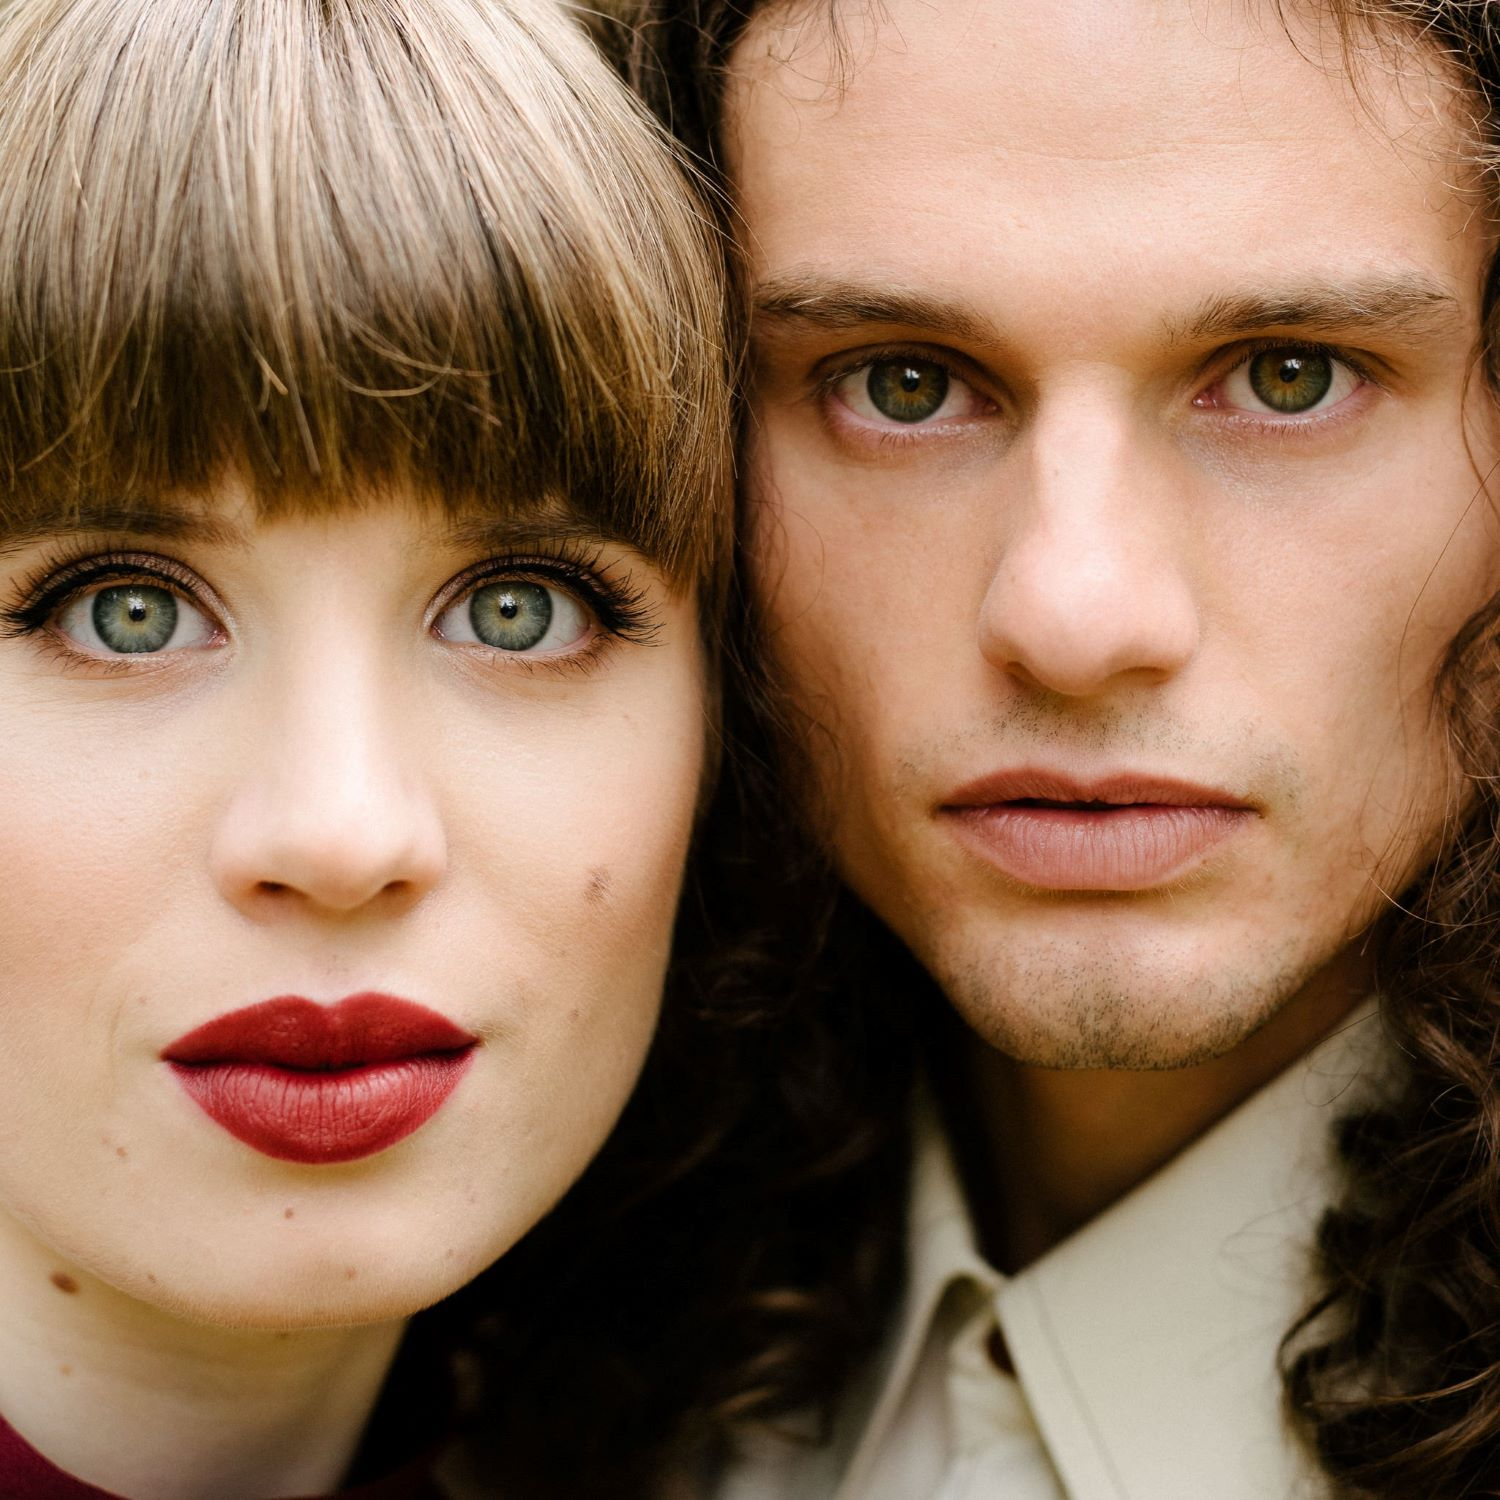 Close up of couple-girls wearing makeup of bold red lips and winged eyeliner